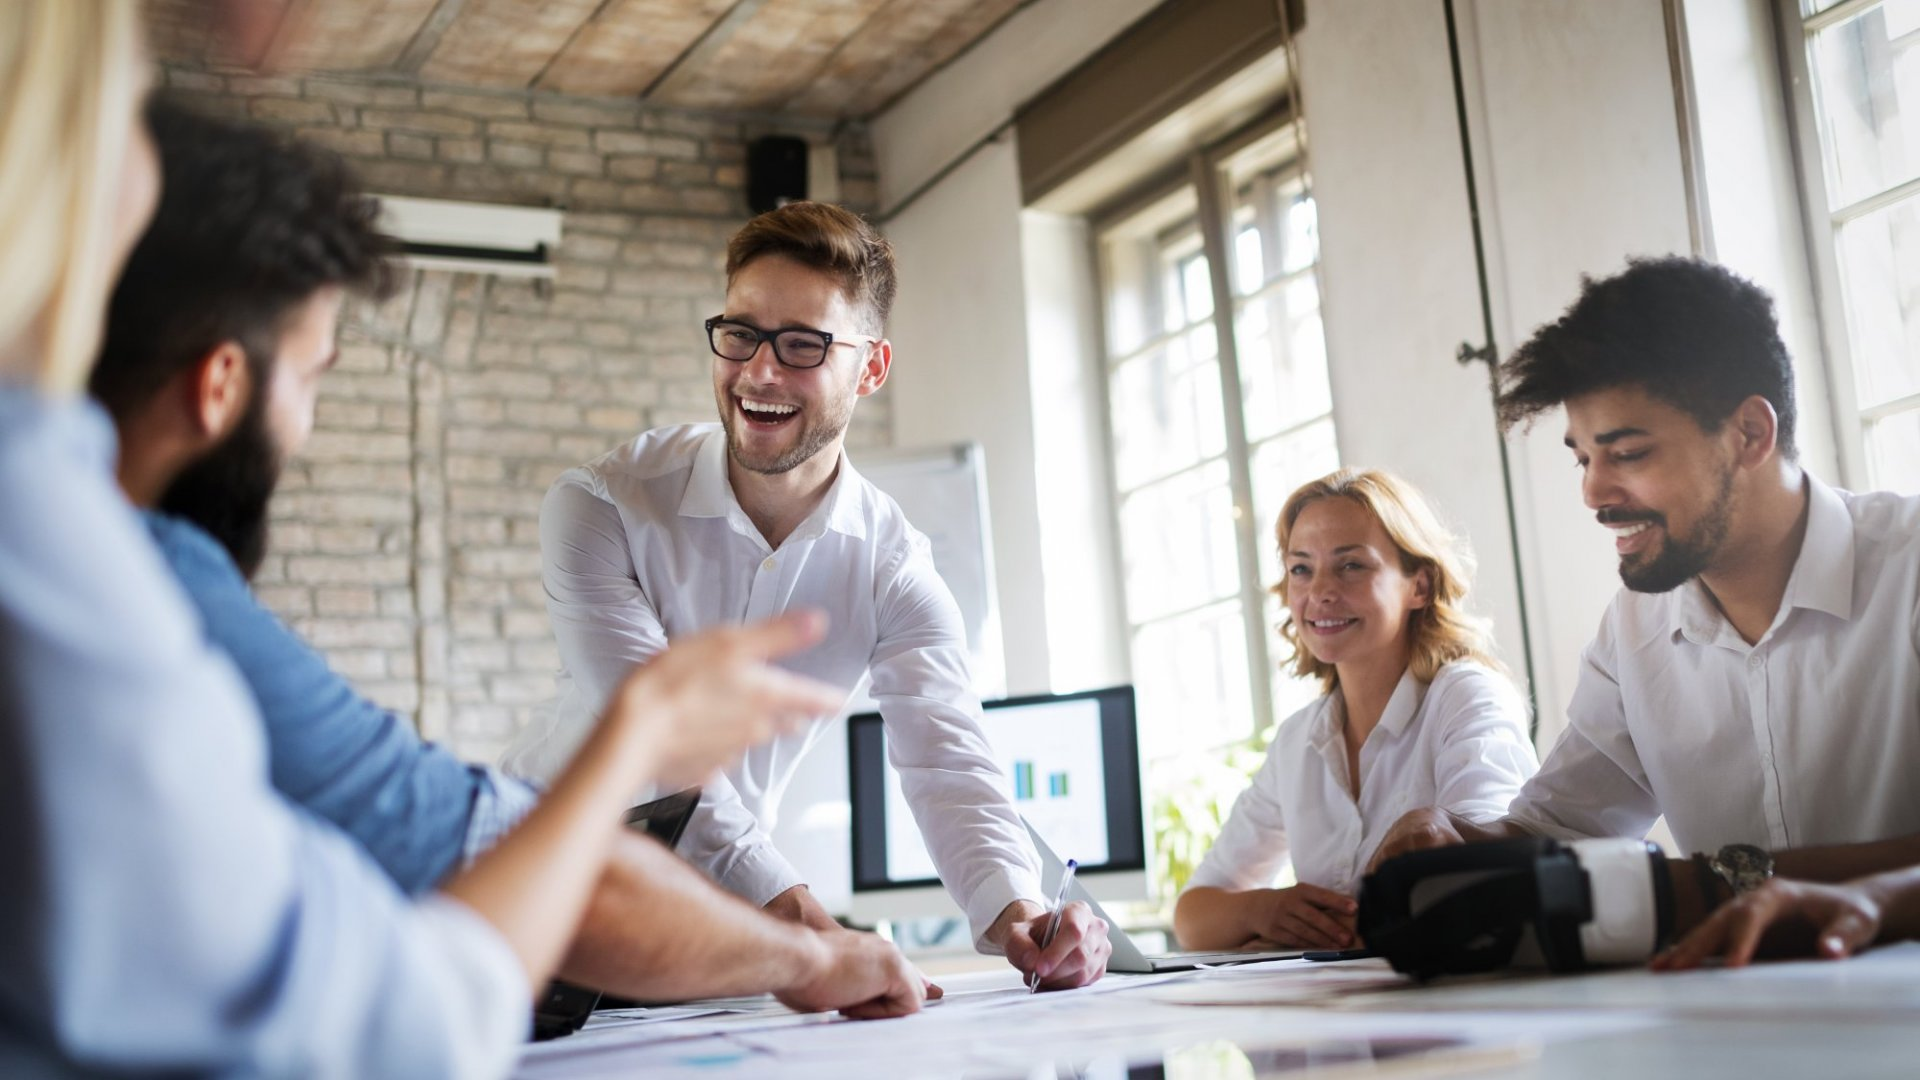 3 Strategies to Build a Strong Company Culture